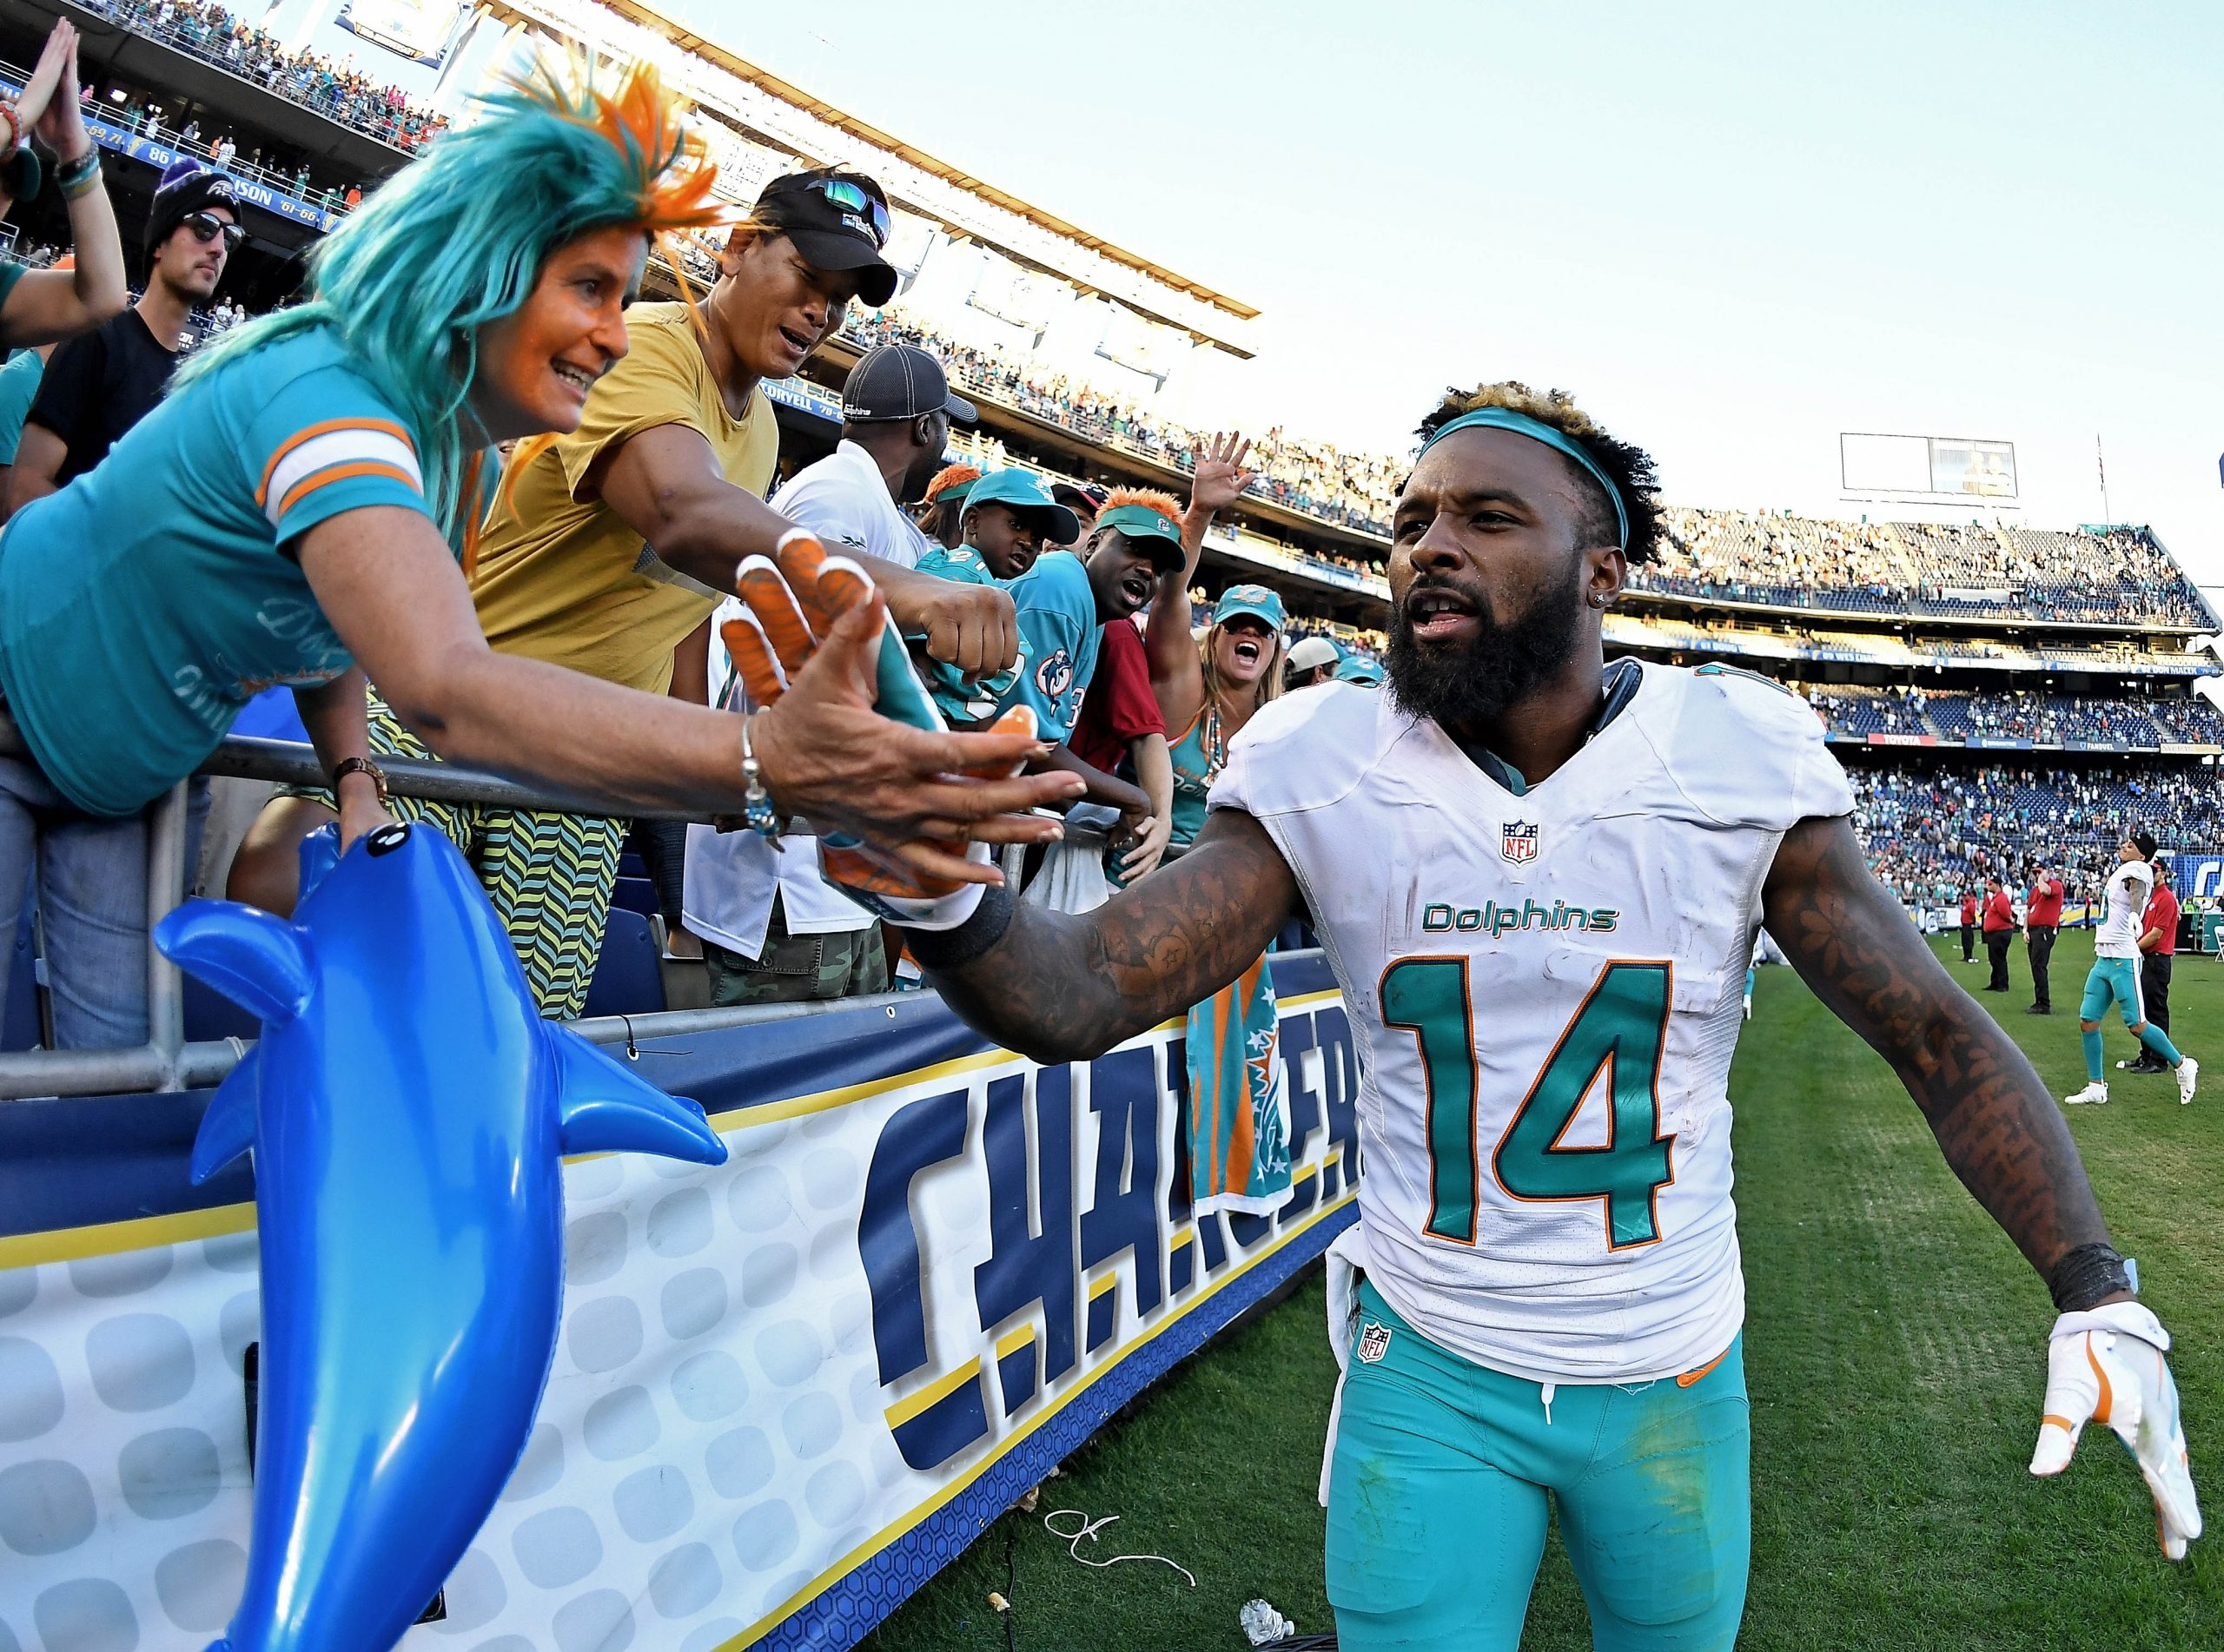 Five-Game Winning Streak Earns Miami Dolphins Respect From pertaining to Have The Miami Dolphins Won A Superbowl